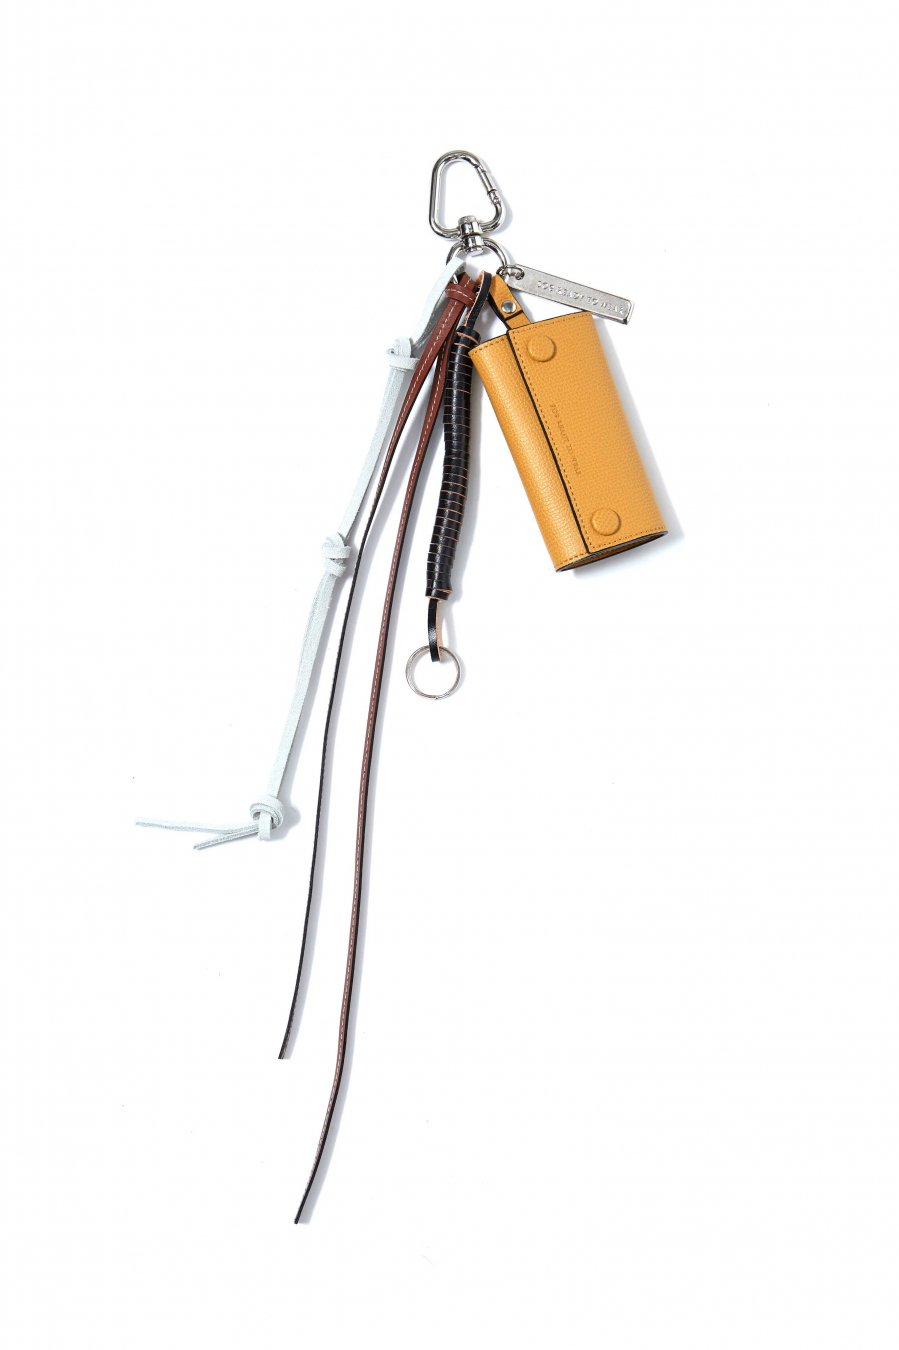 soe  Key Ring With Leather Strap(YELLOW)<img class='new_mark_img2' src='https://img.shop-pro.jp/img/new/icons15.gif' style='border:none;display:inline;margin:0px;padding:0px;width:auto;' />